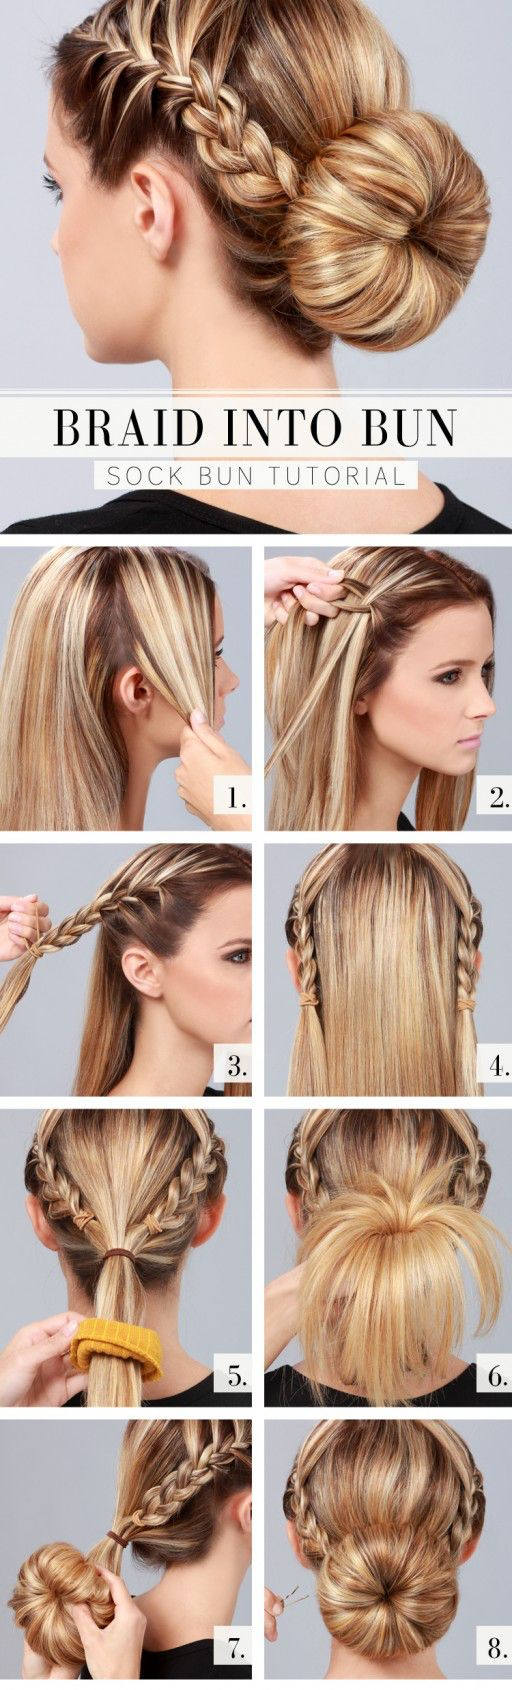 best hairdo images on Pinterest Hairstyles Make up and Chignons